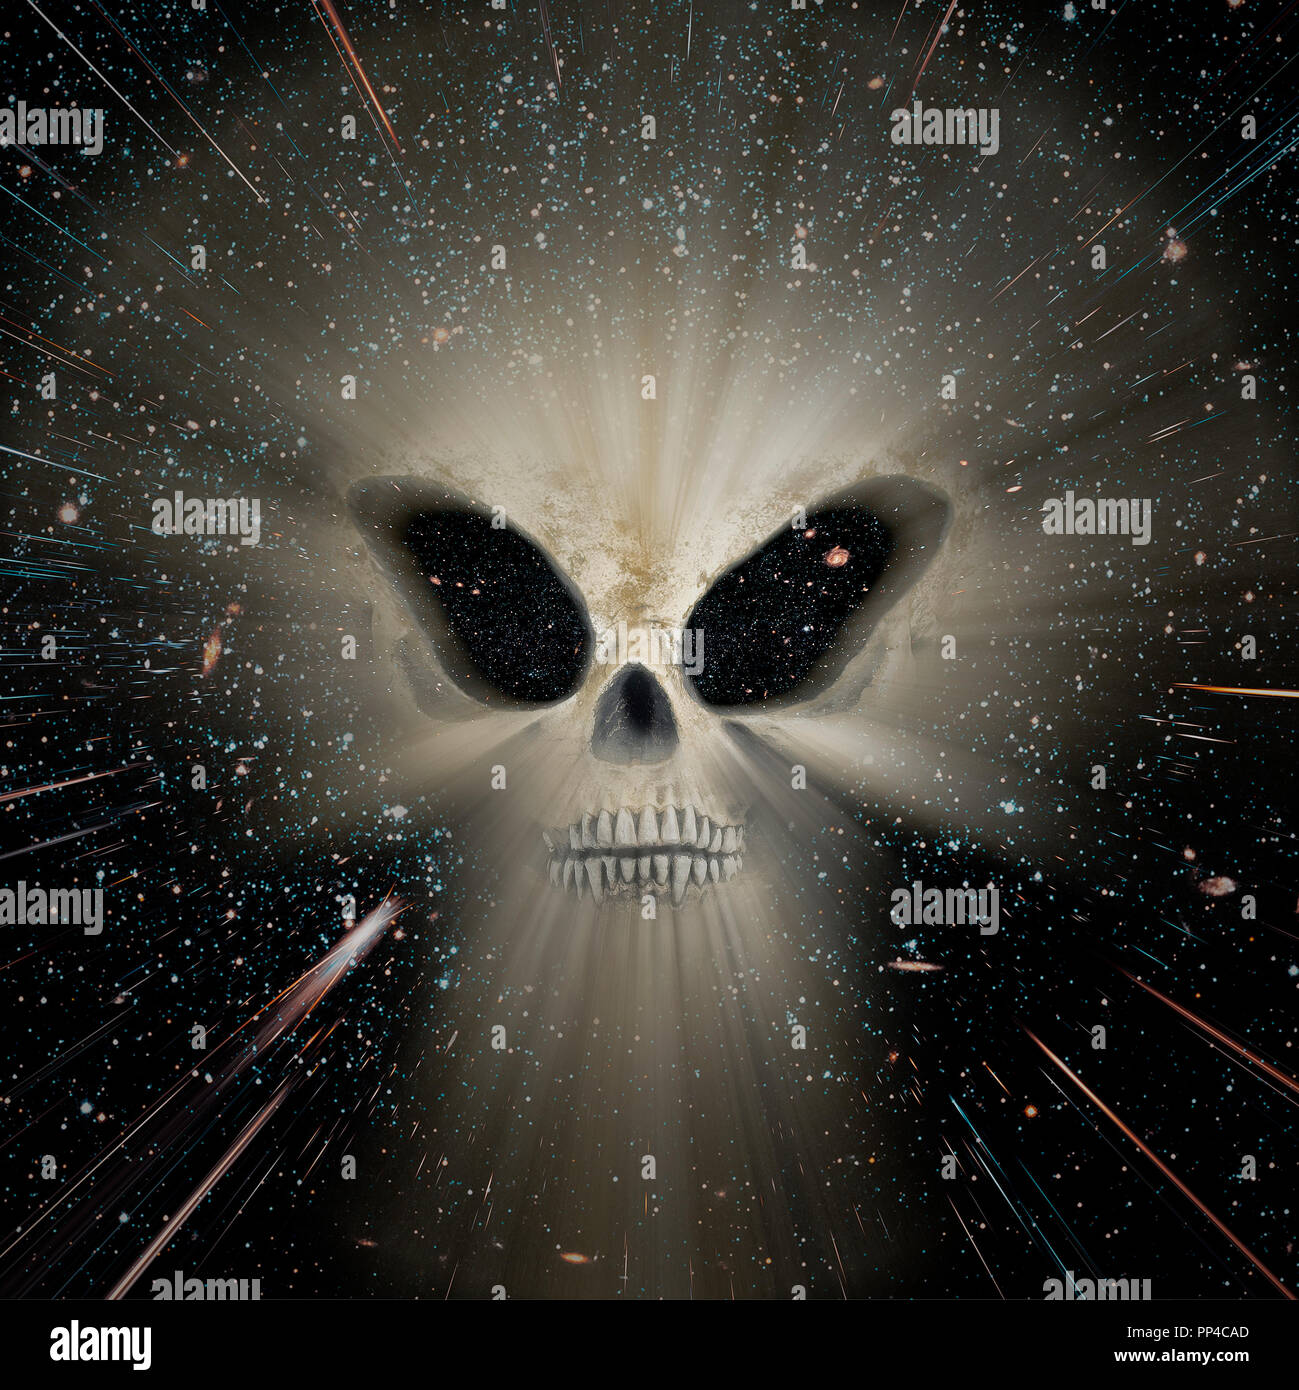 Conceptual image about the universe and its threats with a skull of an alien in the foreground. Used part of a NASA photo for the background. - Stock Image